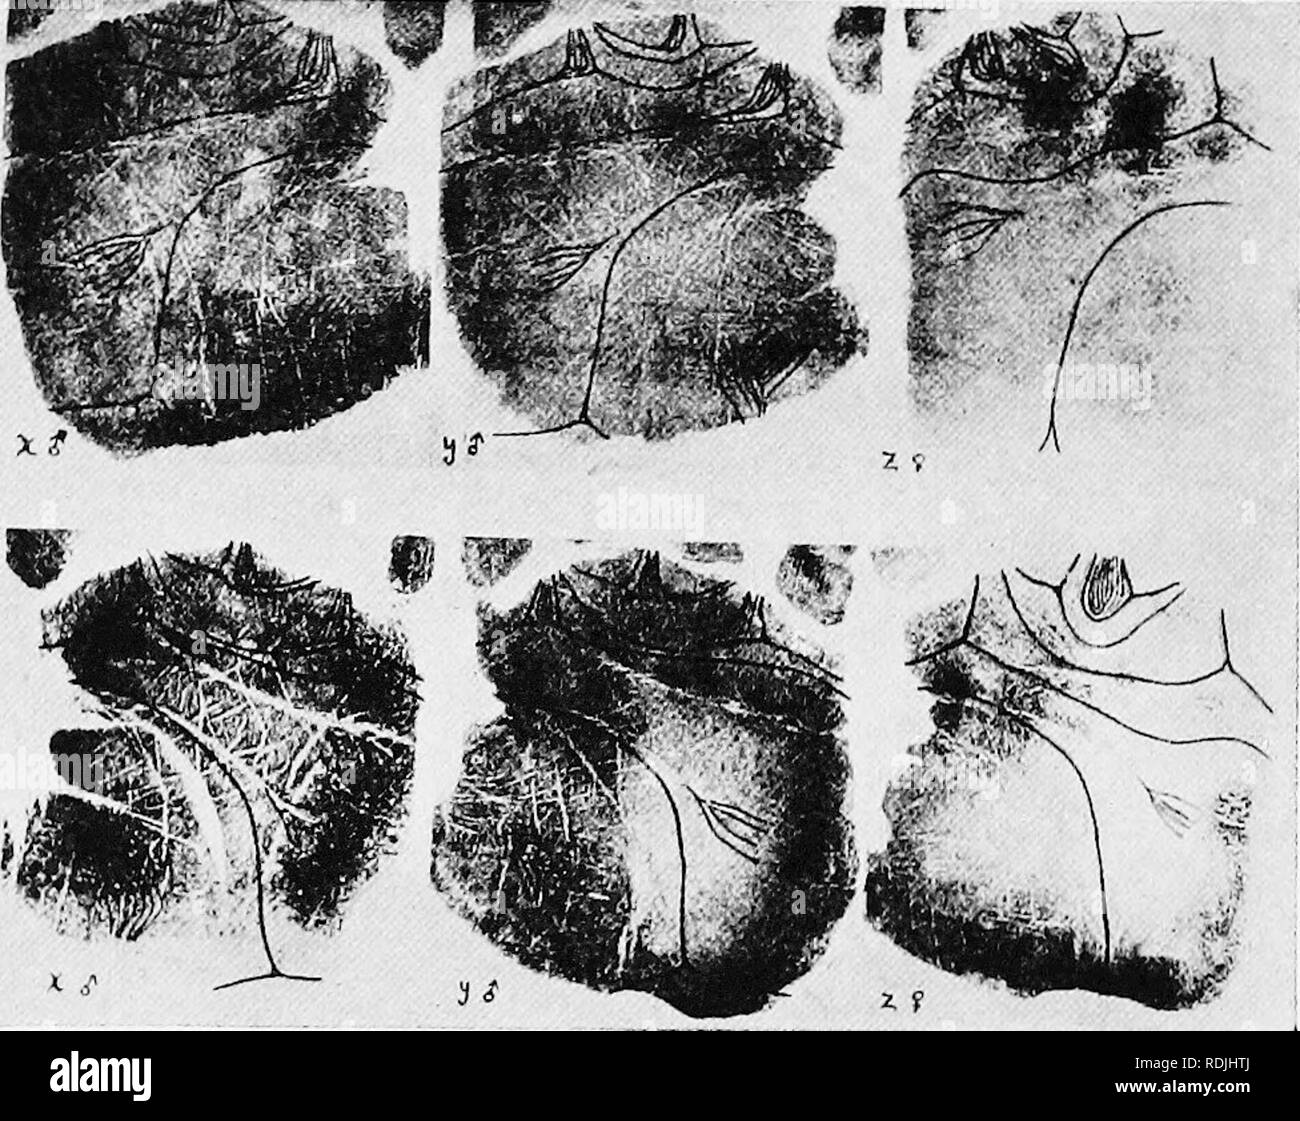 """. The biology of twins (mammals) . Twins. 158 THE BIOLOGY OF TWINS demonstrate monozygotic origin, but lack of identity does not disprove the possibility of monozygotic origin. Wilder has illustrated certain very good cases of identity by means of photographs of palm- and sole-prints (see Fig. 52). The heavy Knes are the hnes of interpretation. Fig. S3.—Photograph (from Wilder) of the left (above) and right (below) palm-prints o'f a set of triplets. Note the close identity of the males, which are evidently """"identicals,"""" and the unlikeness of these to the female triplet on the right,  - Stock Image"""